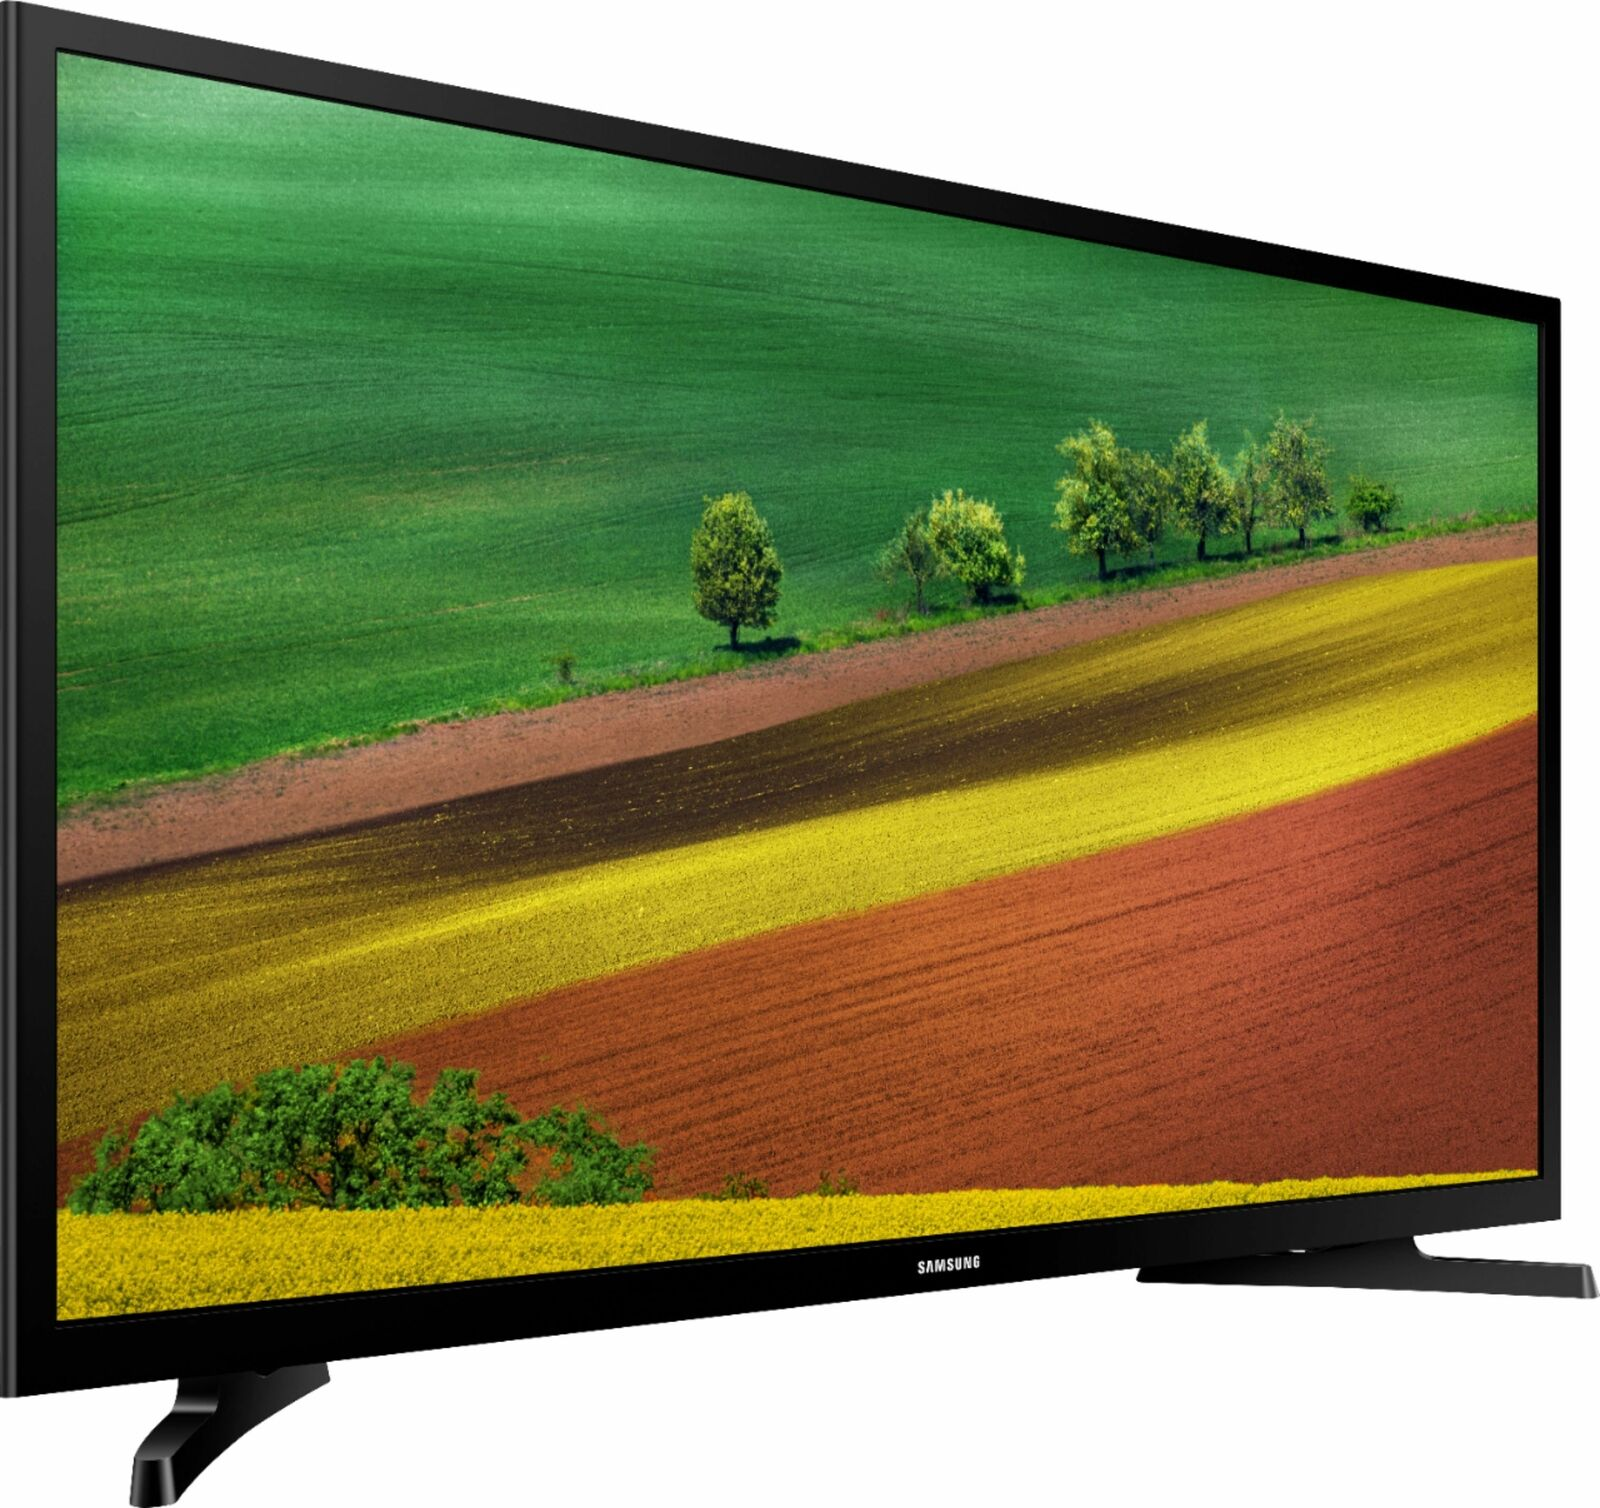 32 inch 720p class led m4500 series